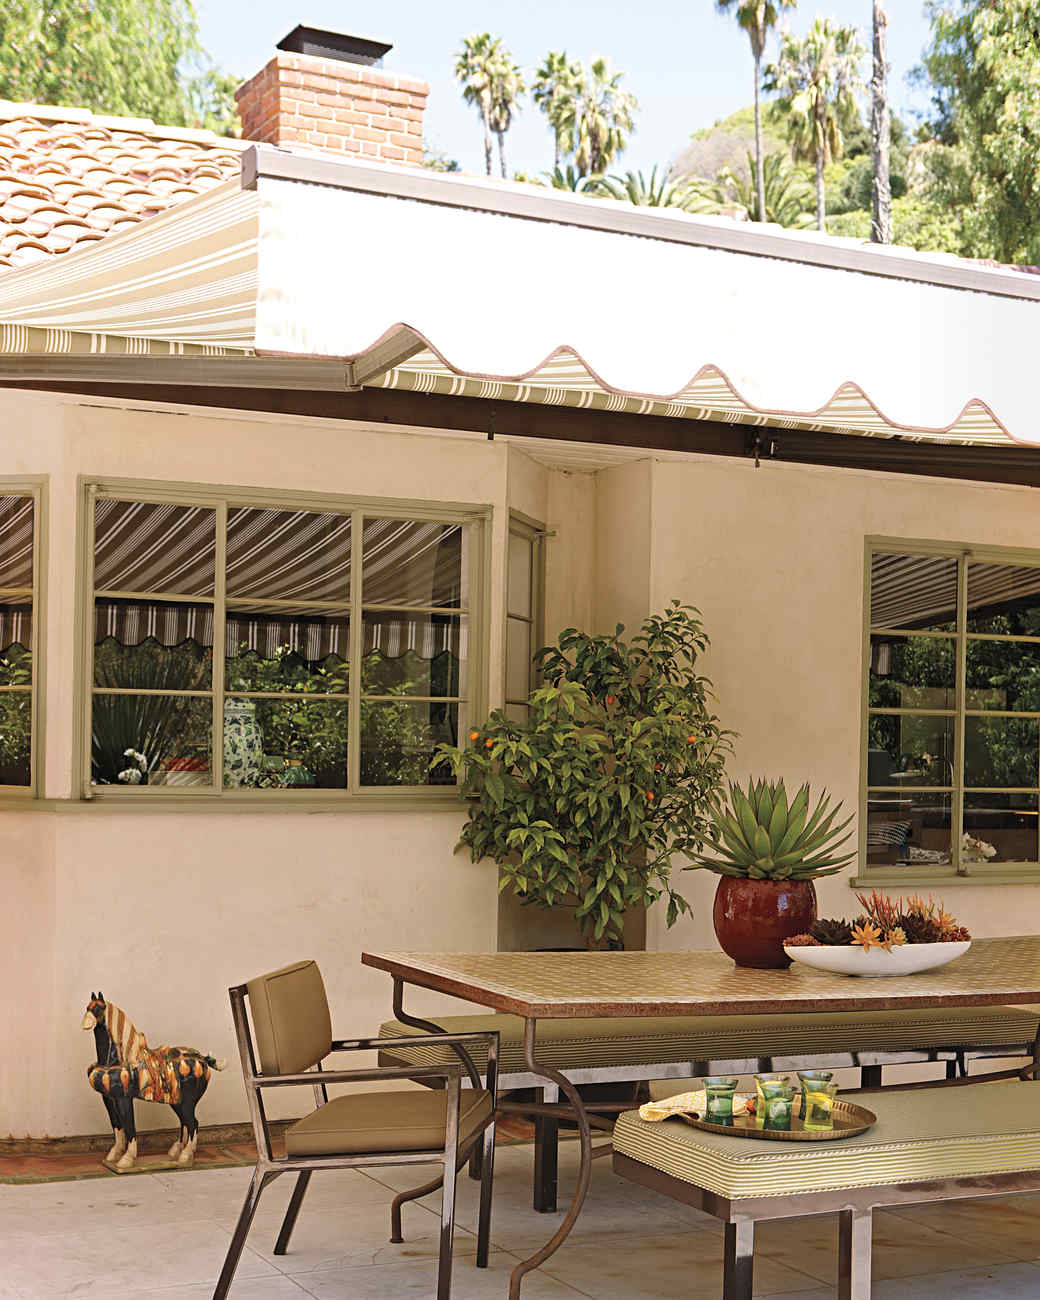 anderson-house-patio-0911mld107423.jpg